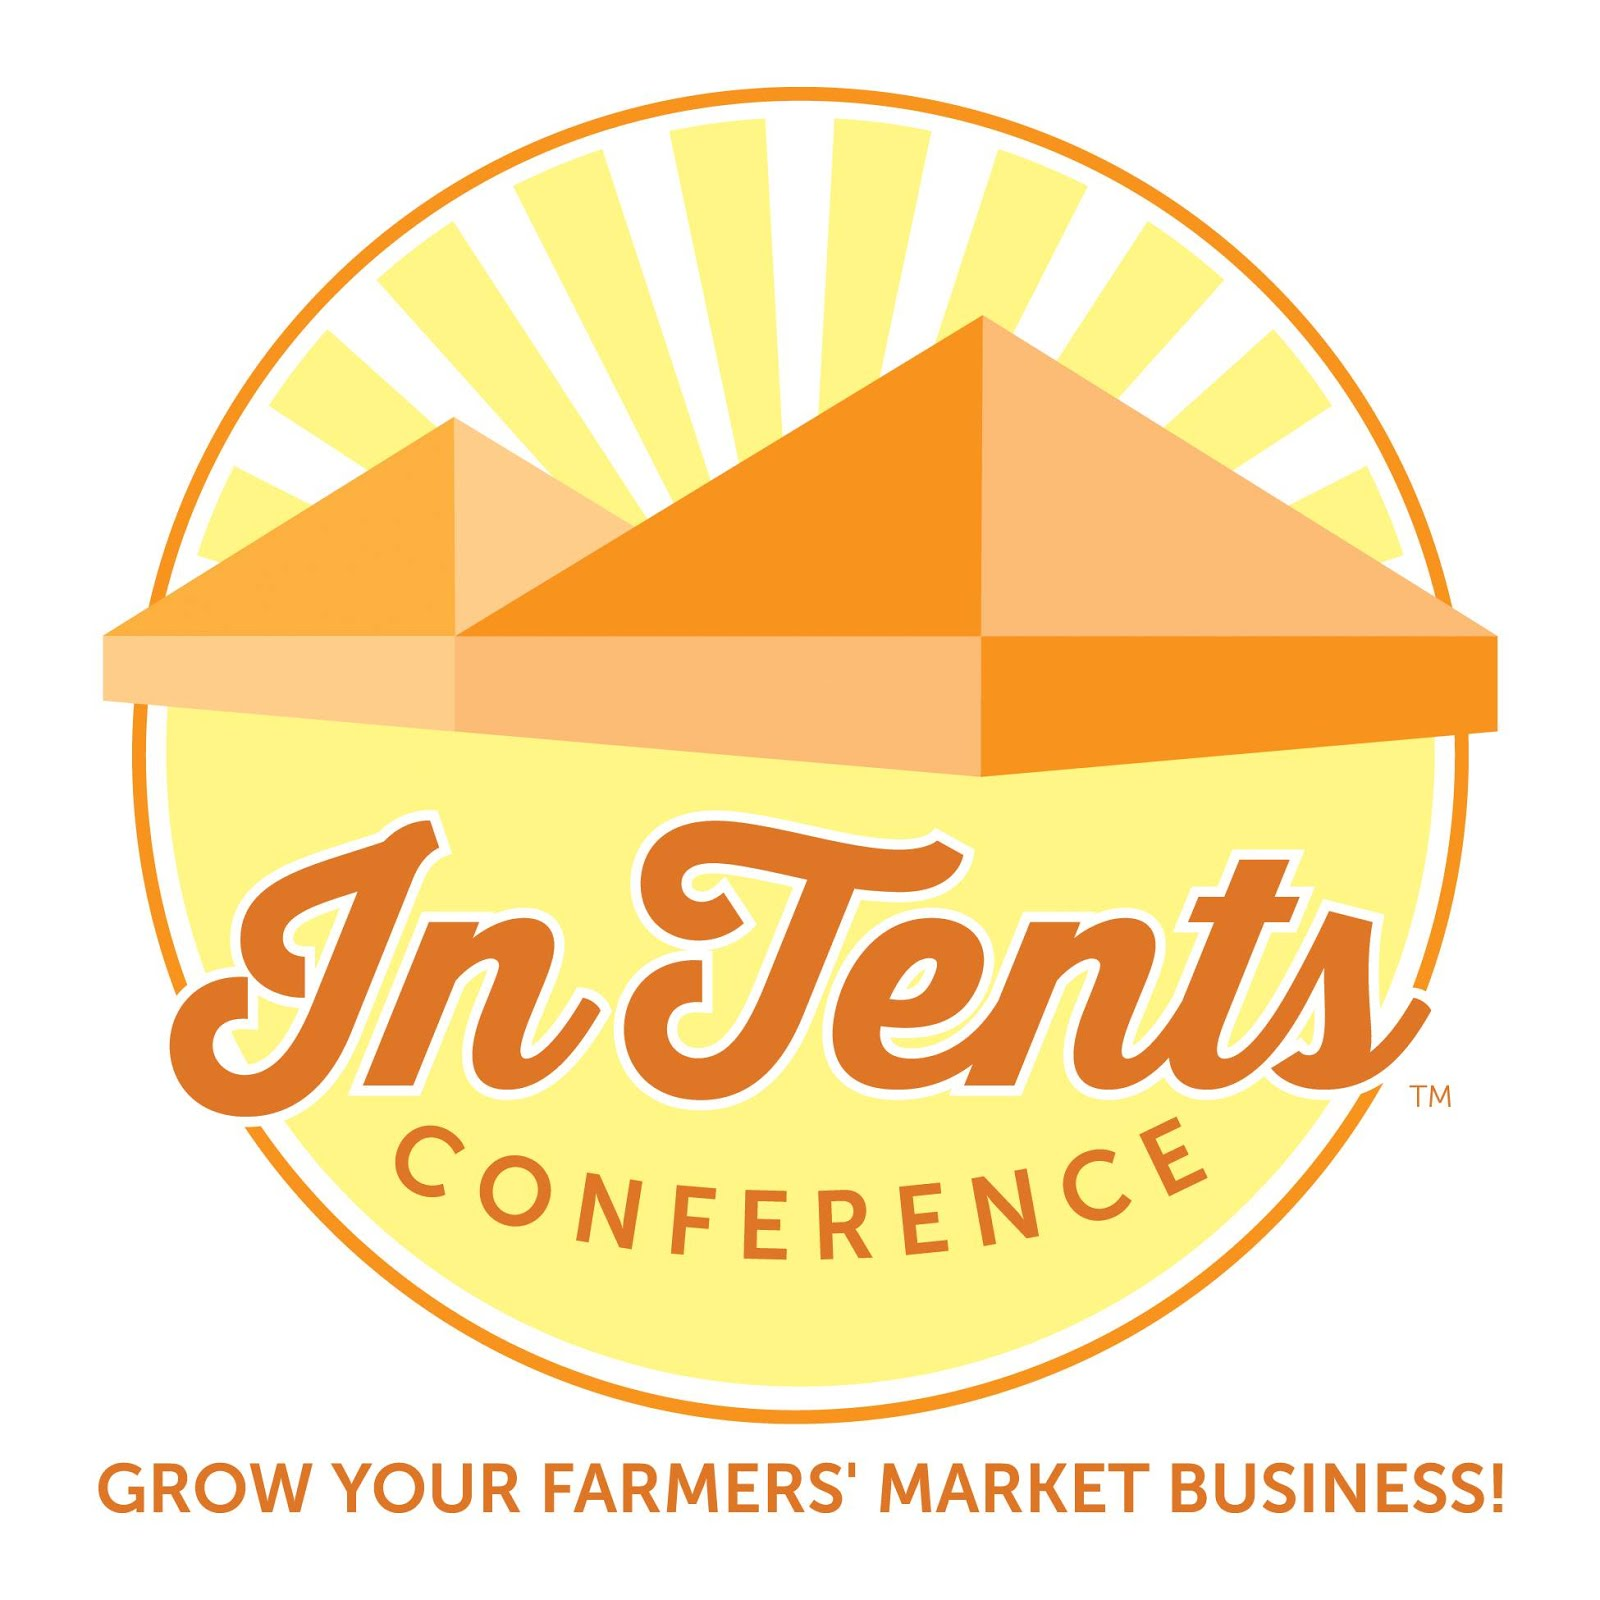 Learn How To Grow Your Small Business At The San Diego InTents Conference - February 26 & 27!